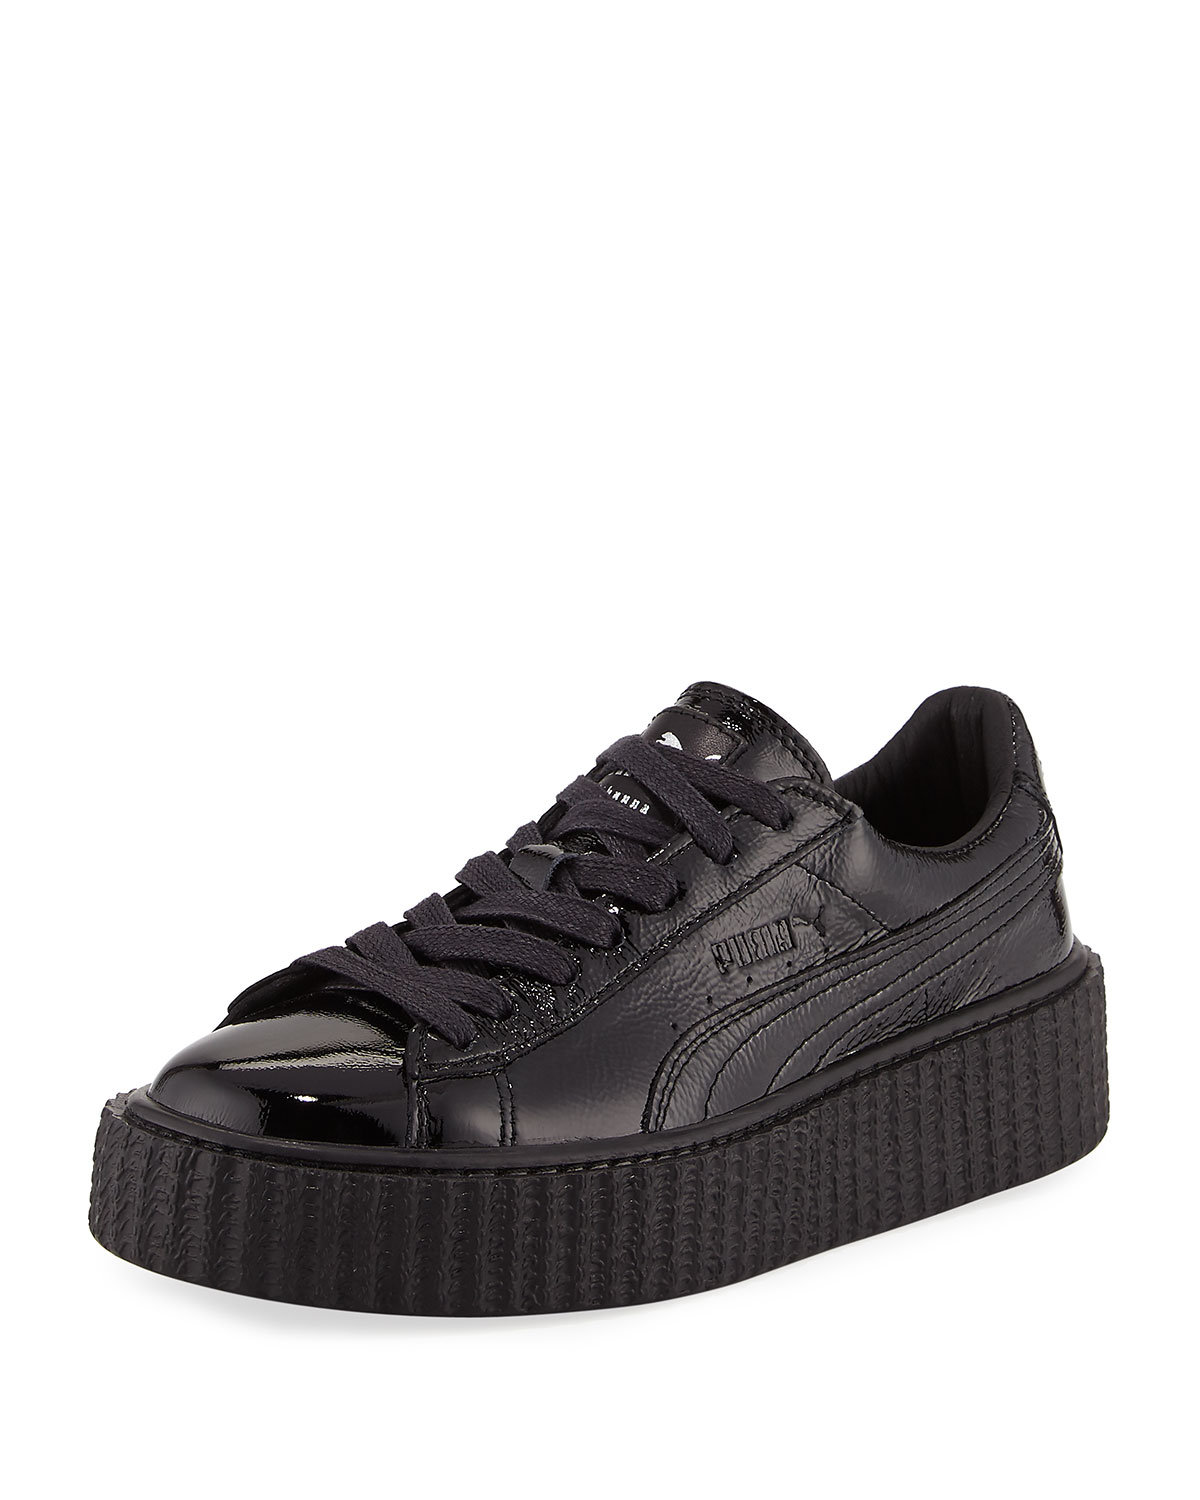 the latest 96acb d7314 Creeper Cracked Patent Leather Sneaker, Black